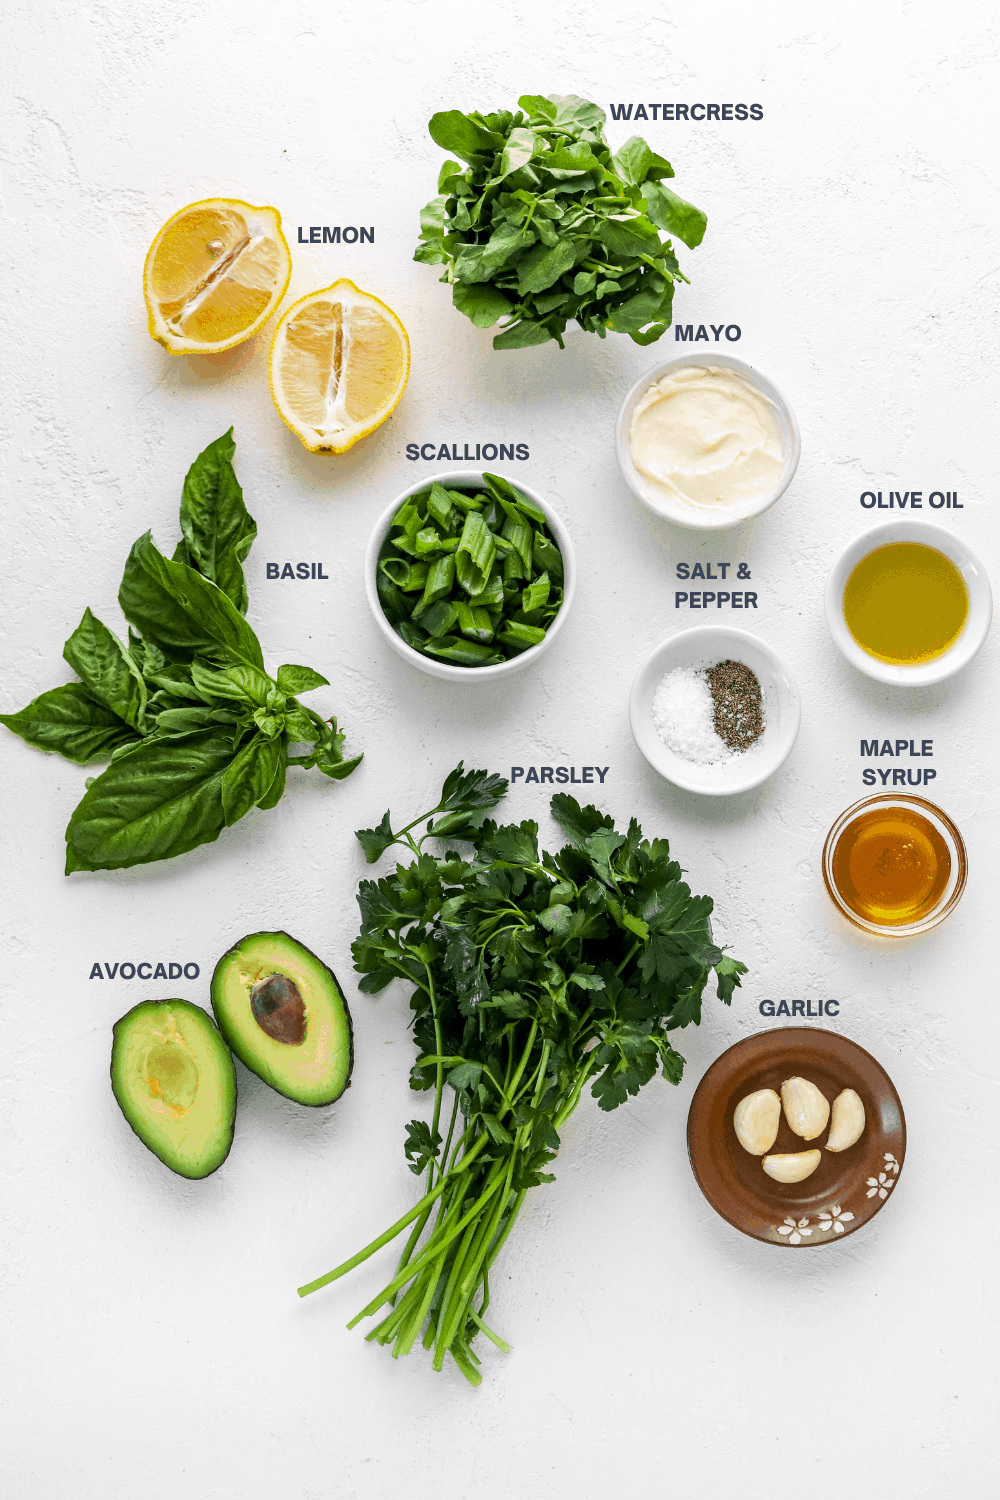 parsley, basil, lemon sliced, mayo, salt and pepper, sliced avocado, garlic and olive oil in bowls on a white surface